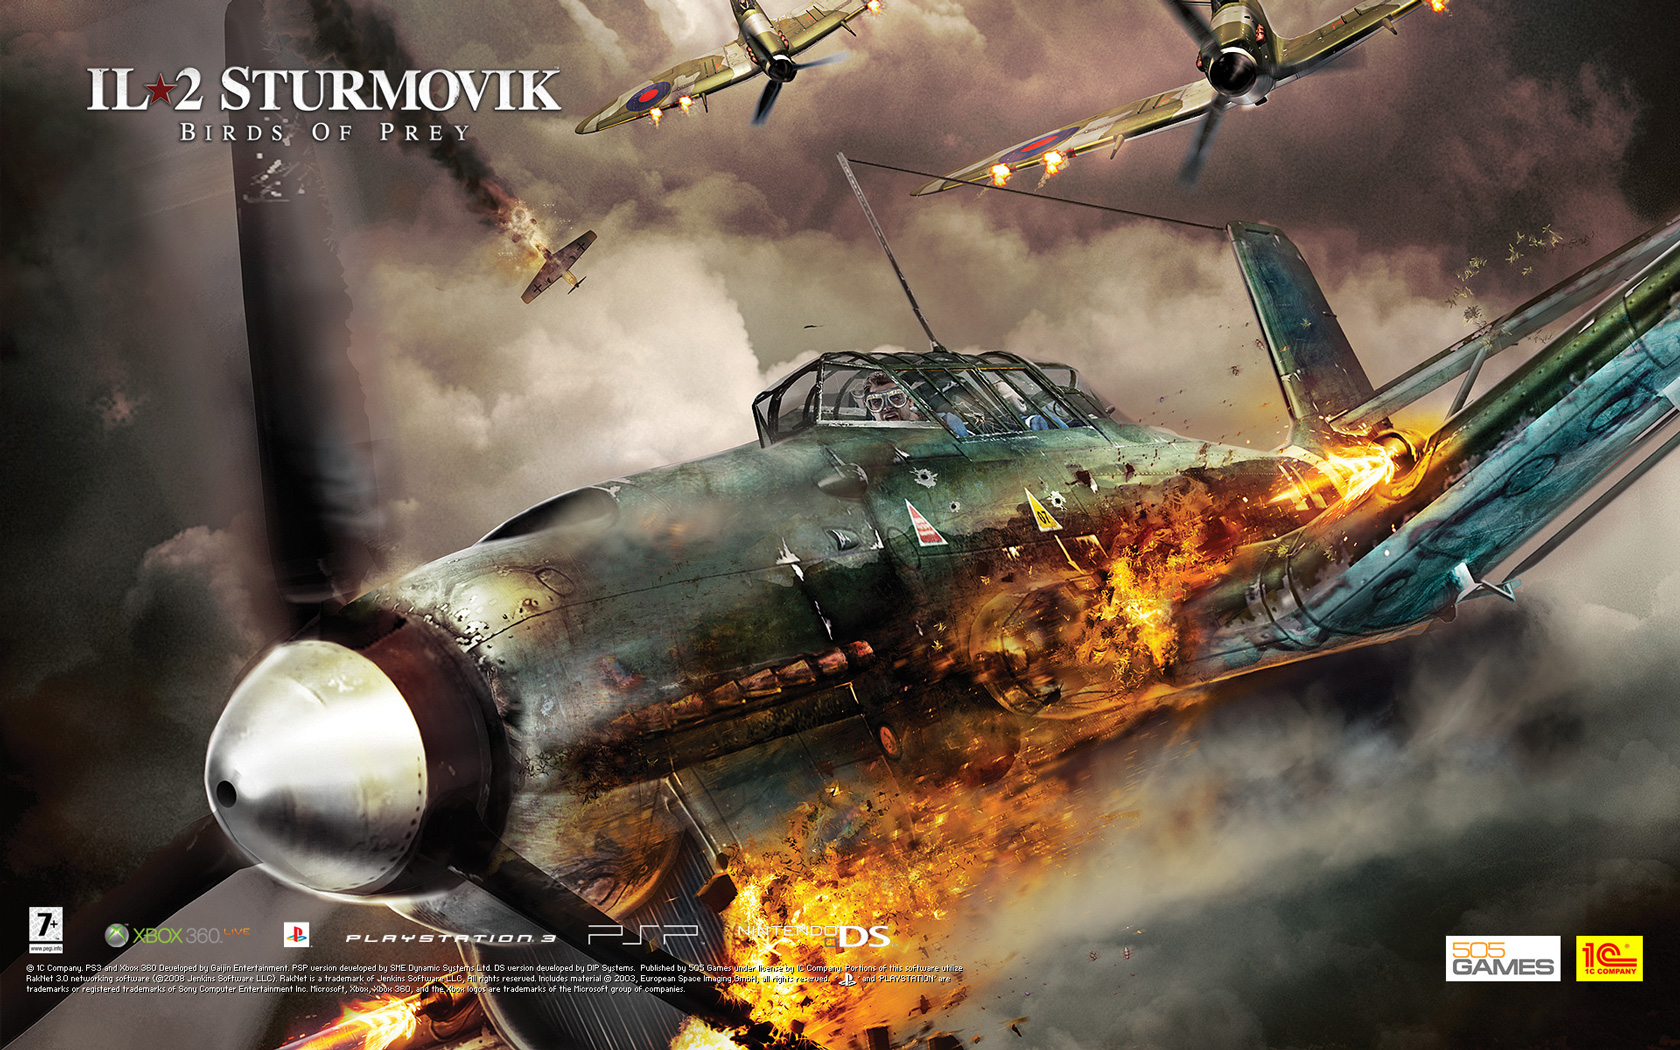 Free IL-2 Sturmovik: Birds of Prey Wallpaper in 1680x1050